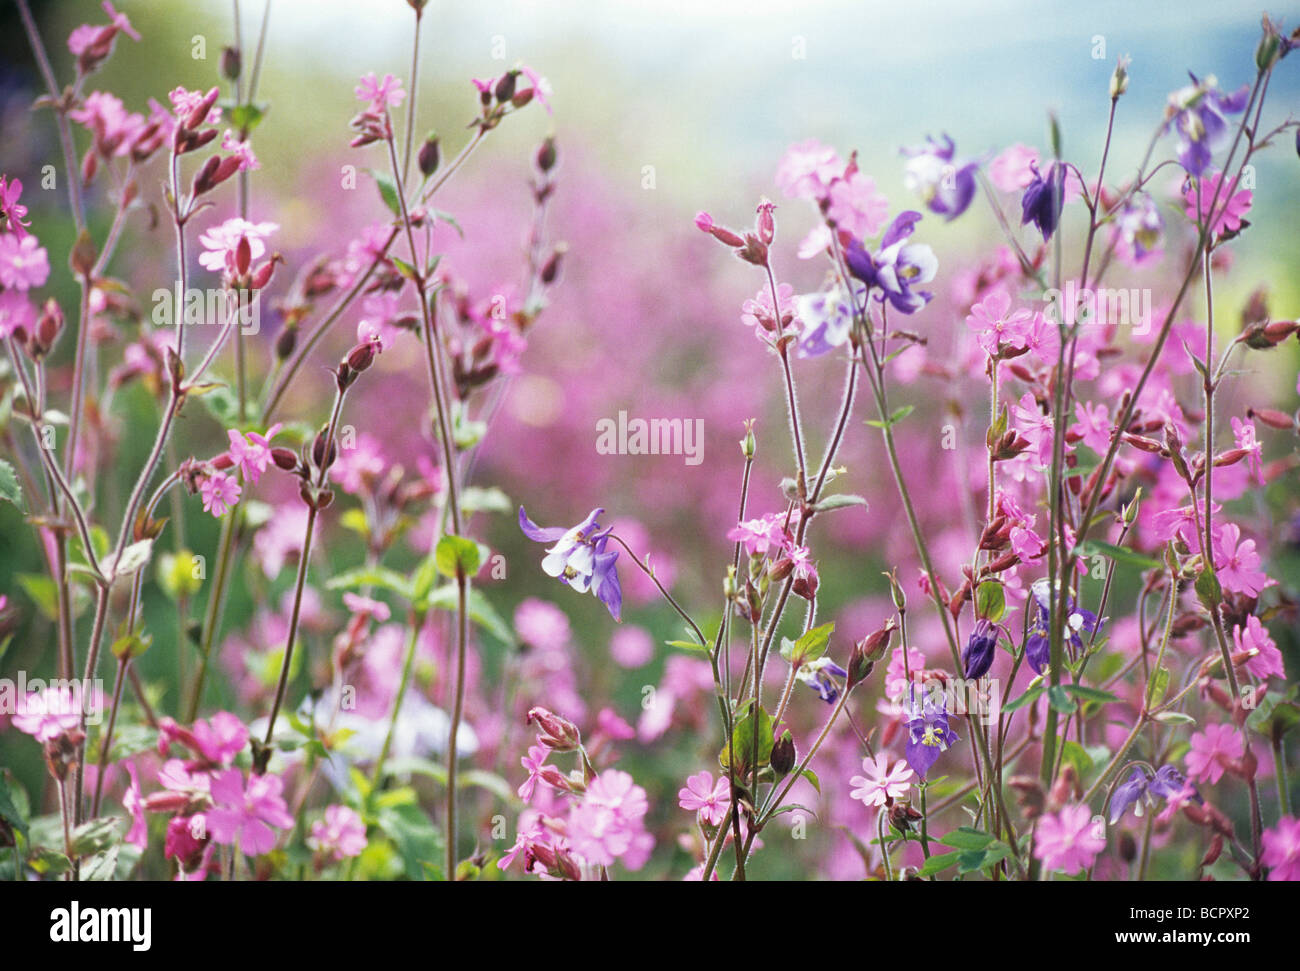 Long stem flowers stock photos long stem flowers stock images alamy lychnis flos jovis campion abundant small pink flowers on long stems mightylinksfo